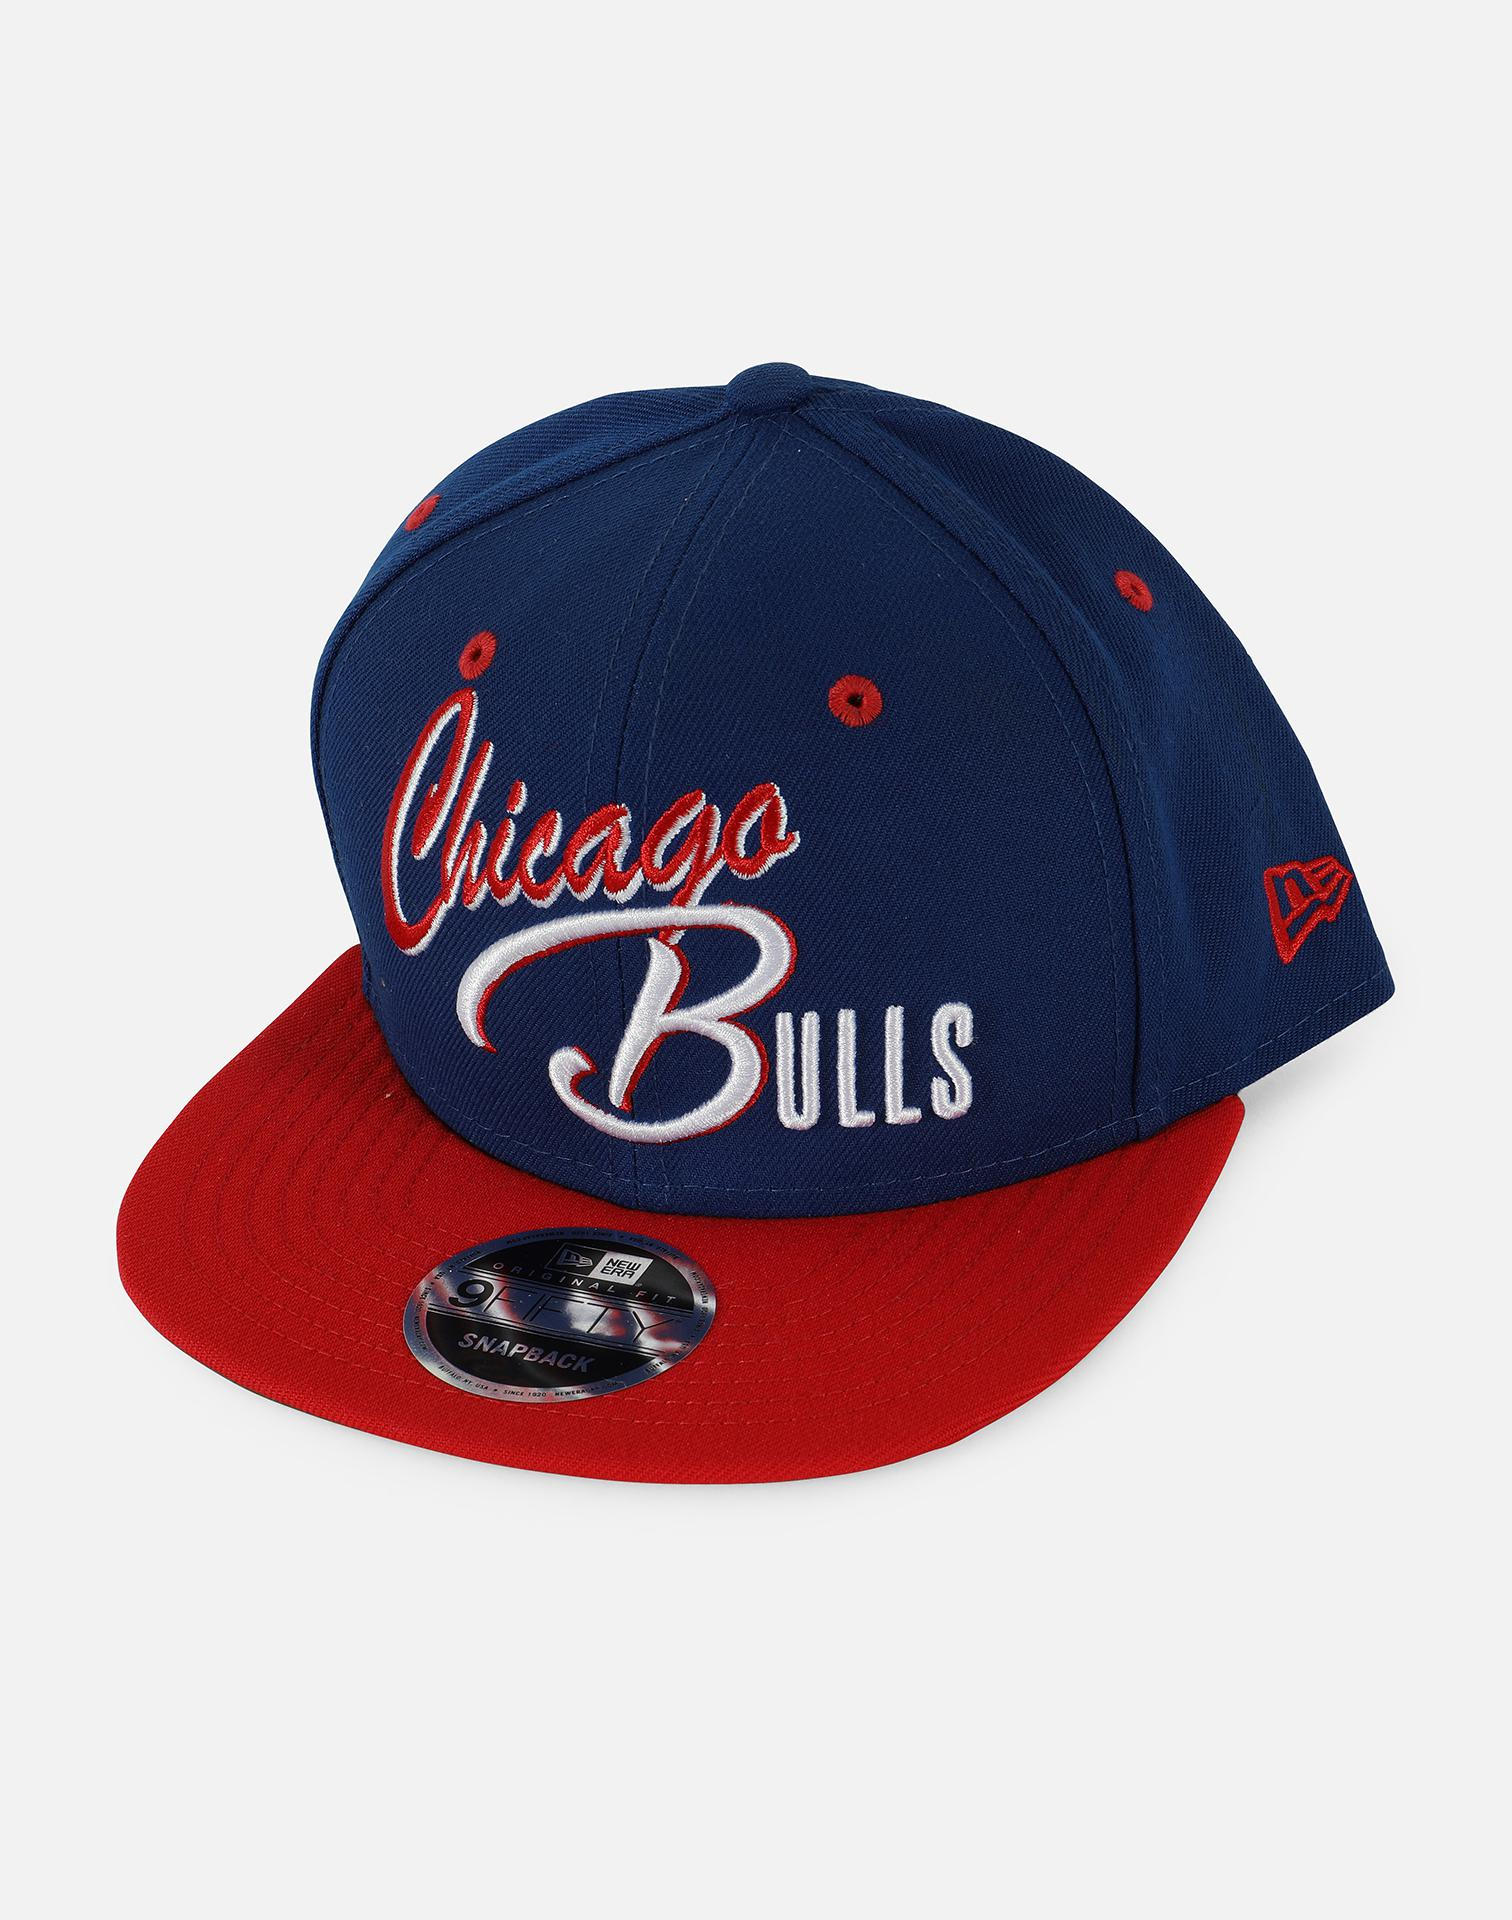 f35a7d37f84 Lyst - Ktz Nba Chicago Bulls Exclusive 9fifty Snapback Hat in Blue ...